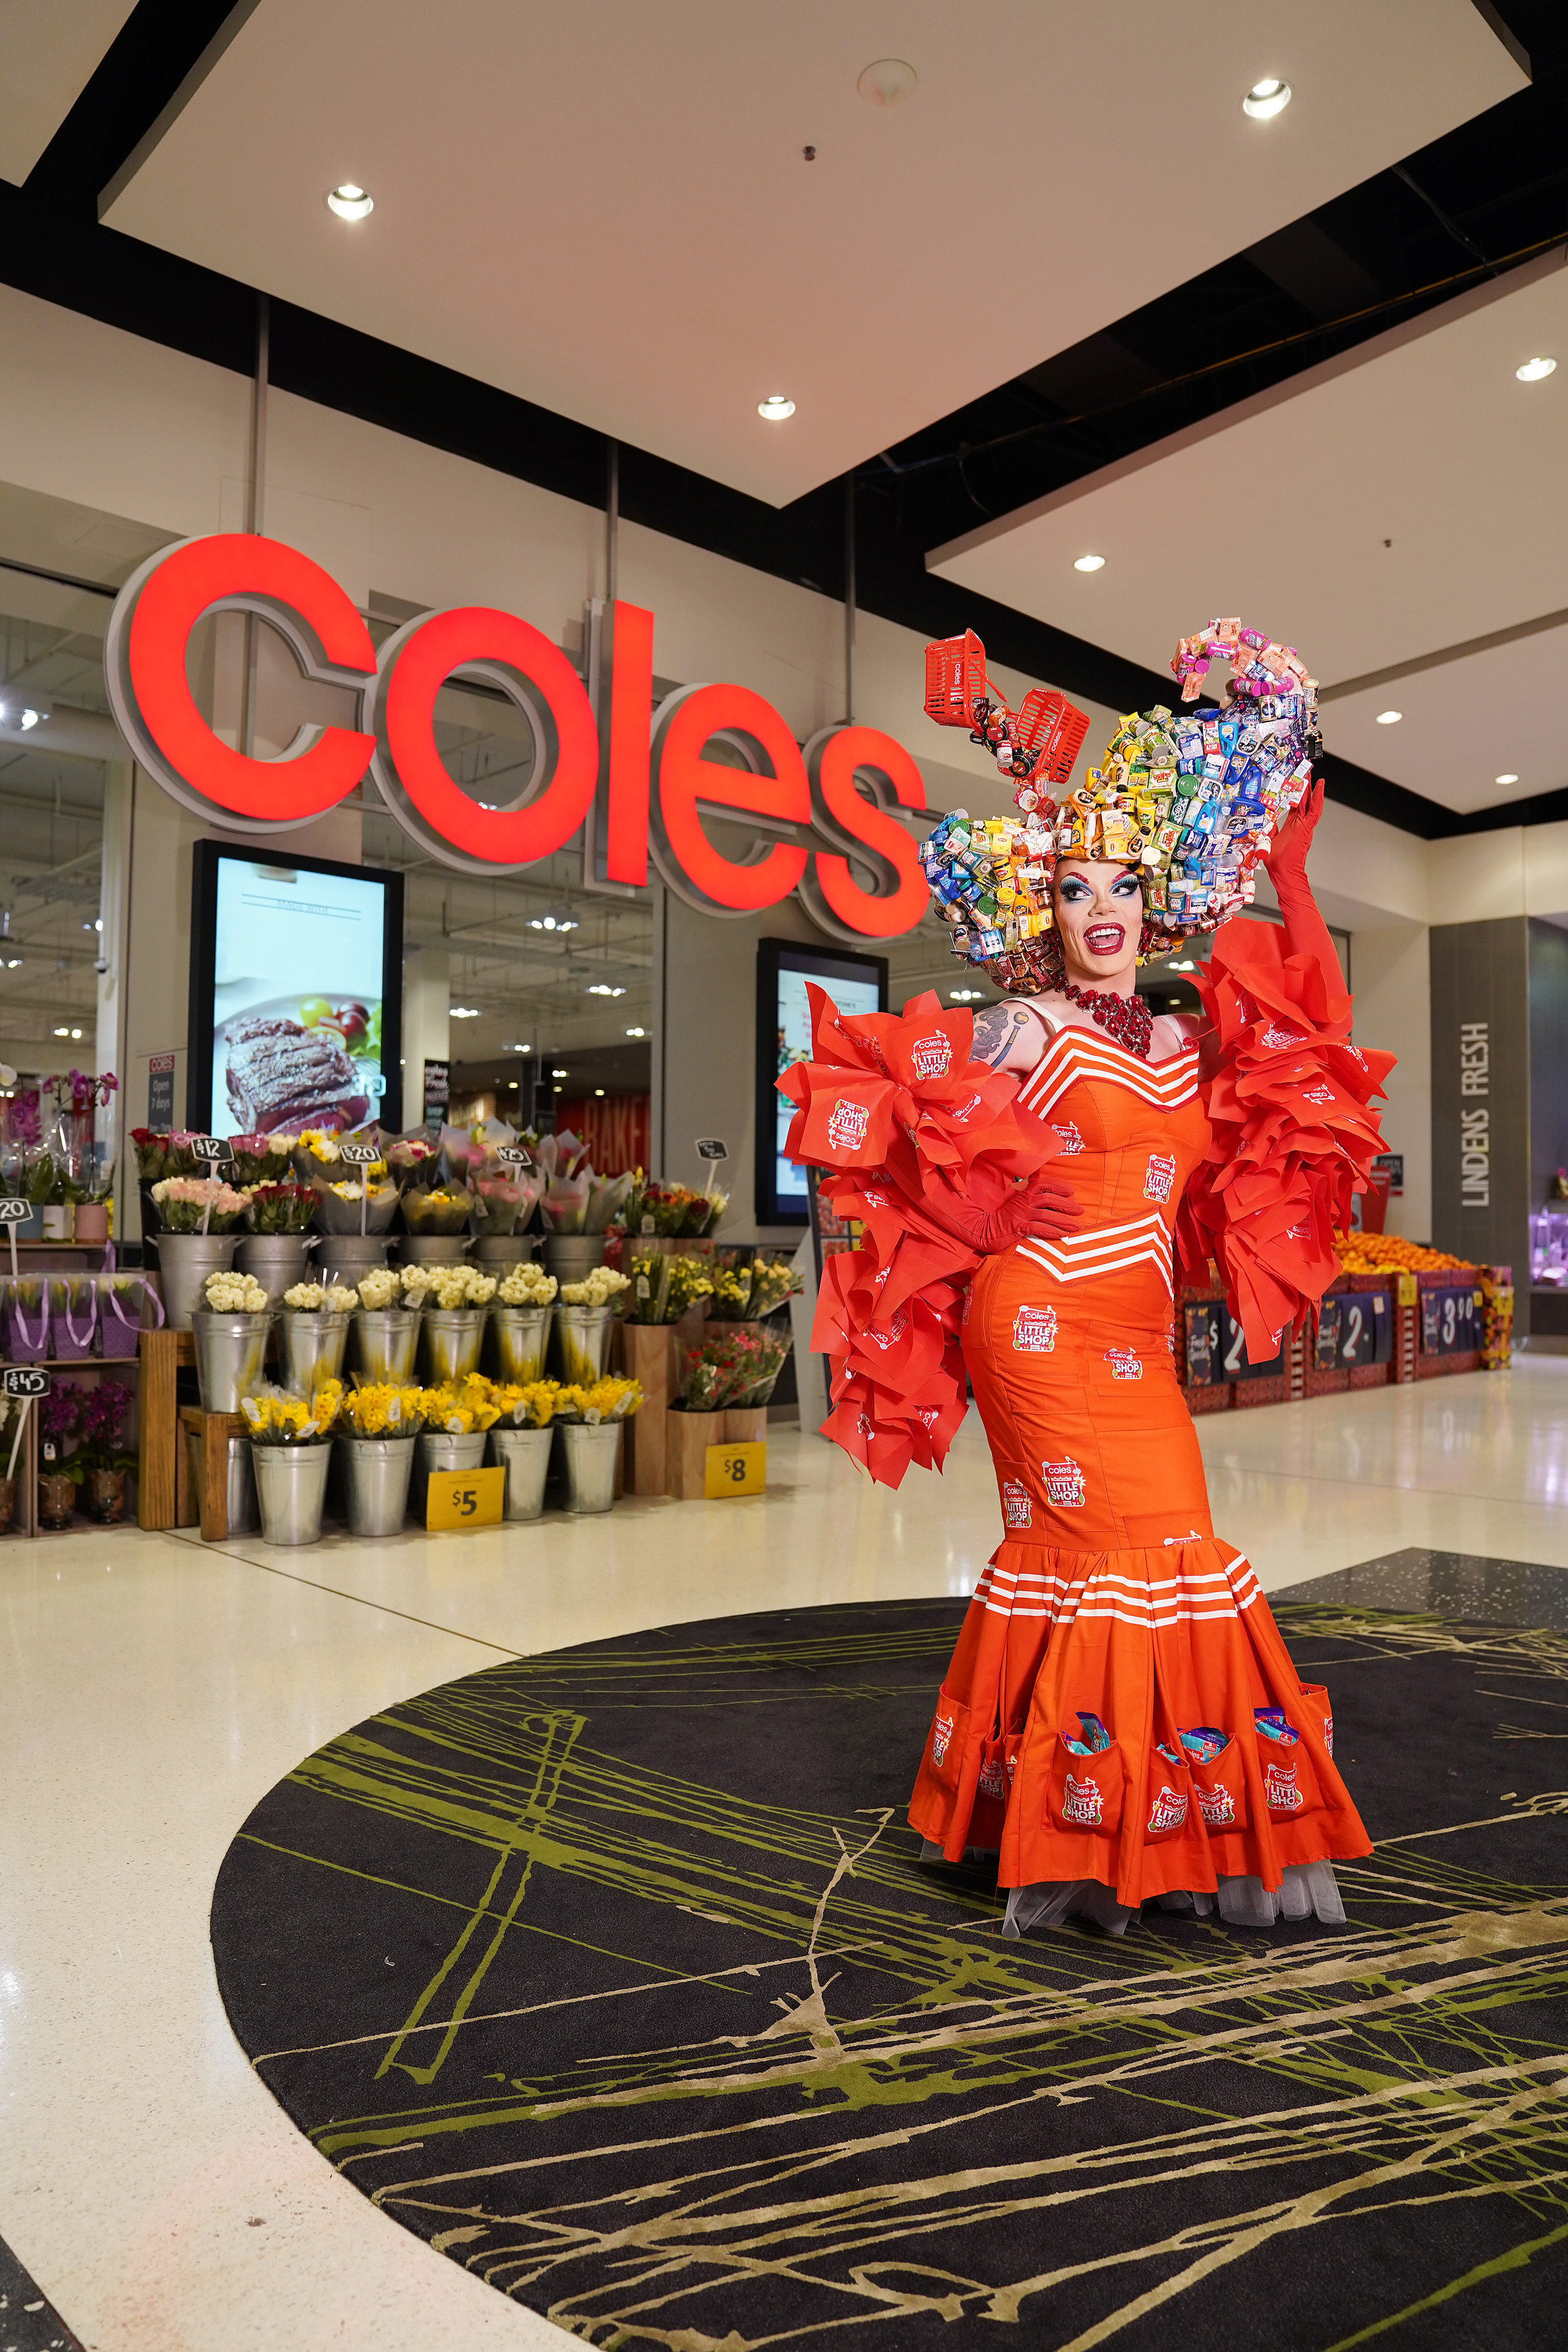 MELBOURNE, AUSTRALIA - AUGUST 17: Art Simone poses in a couture piece inspired by Little Shop 2 mini collectables during the Coles Little Shop swap day at Westfield Southland on August 17, 2019 in Melbourne, Australia. Coles has released a new collection of 30 mini collectables of iconic supermarket products. (Photo by Stefan Postles/Getty Images for Coles)